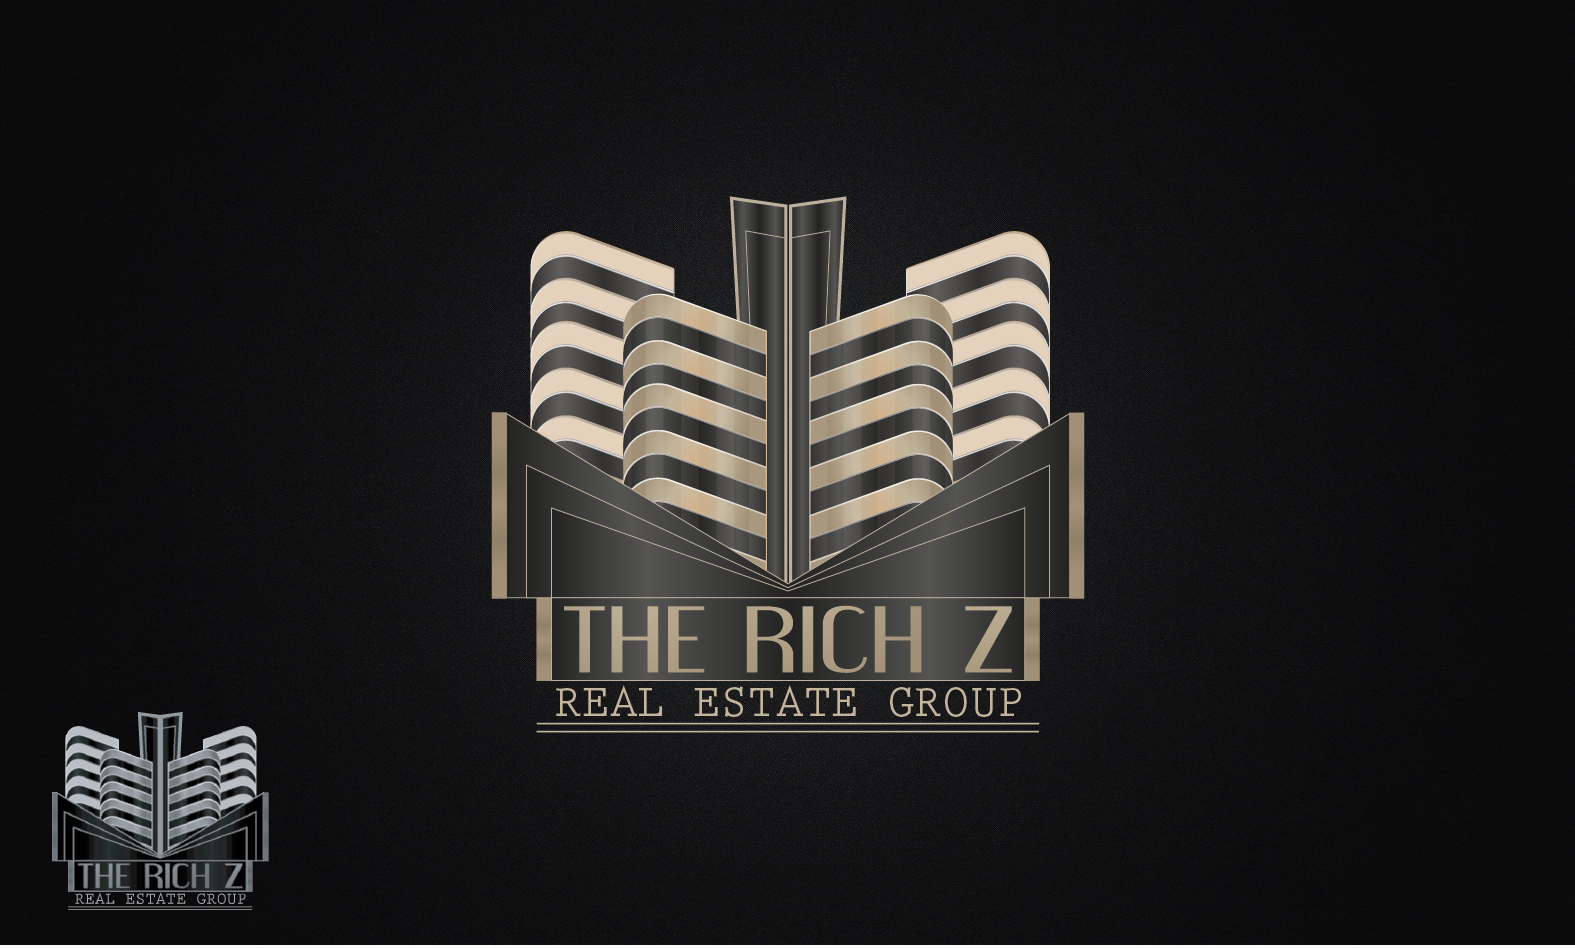 Logo Design by Private User - Entry No. 296 in the Logo Design Contest The Rich Z. Real Estate Group Logo Design.